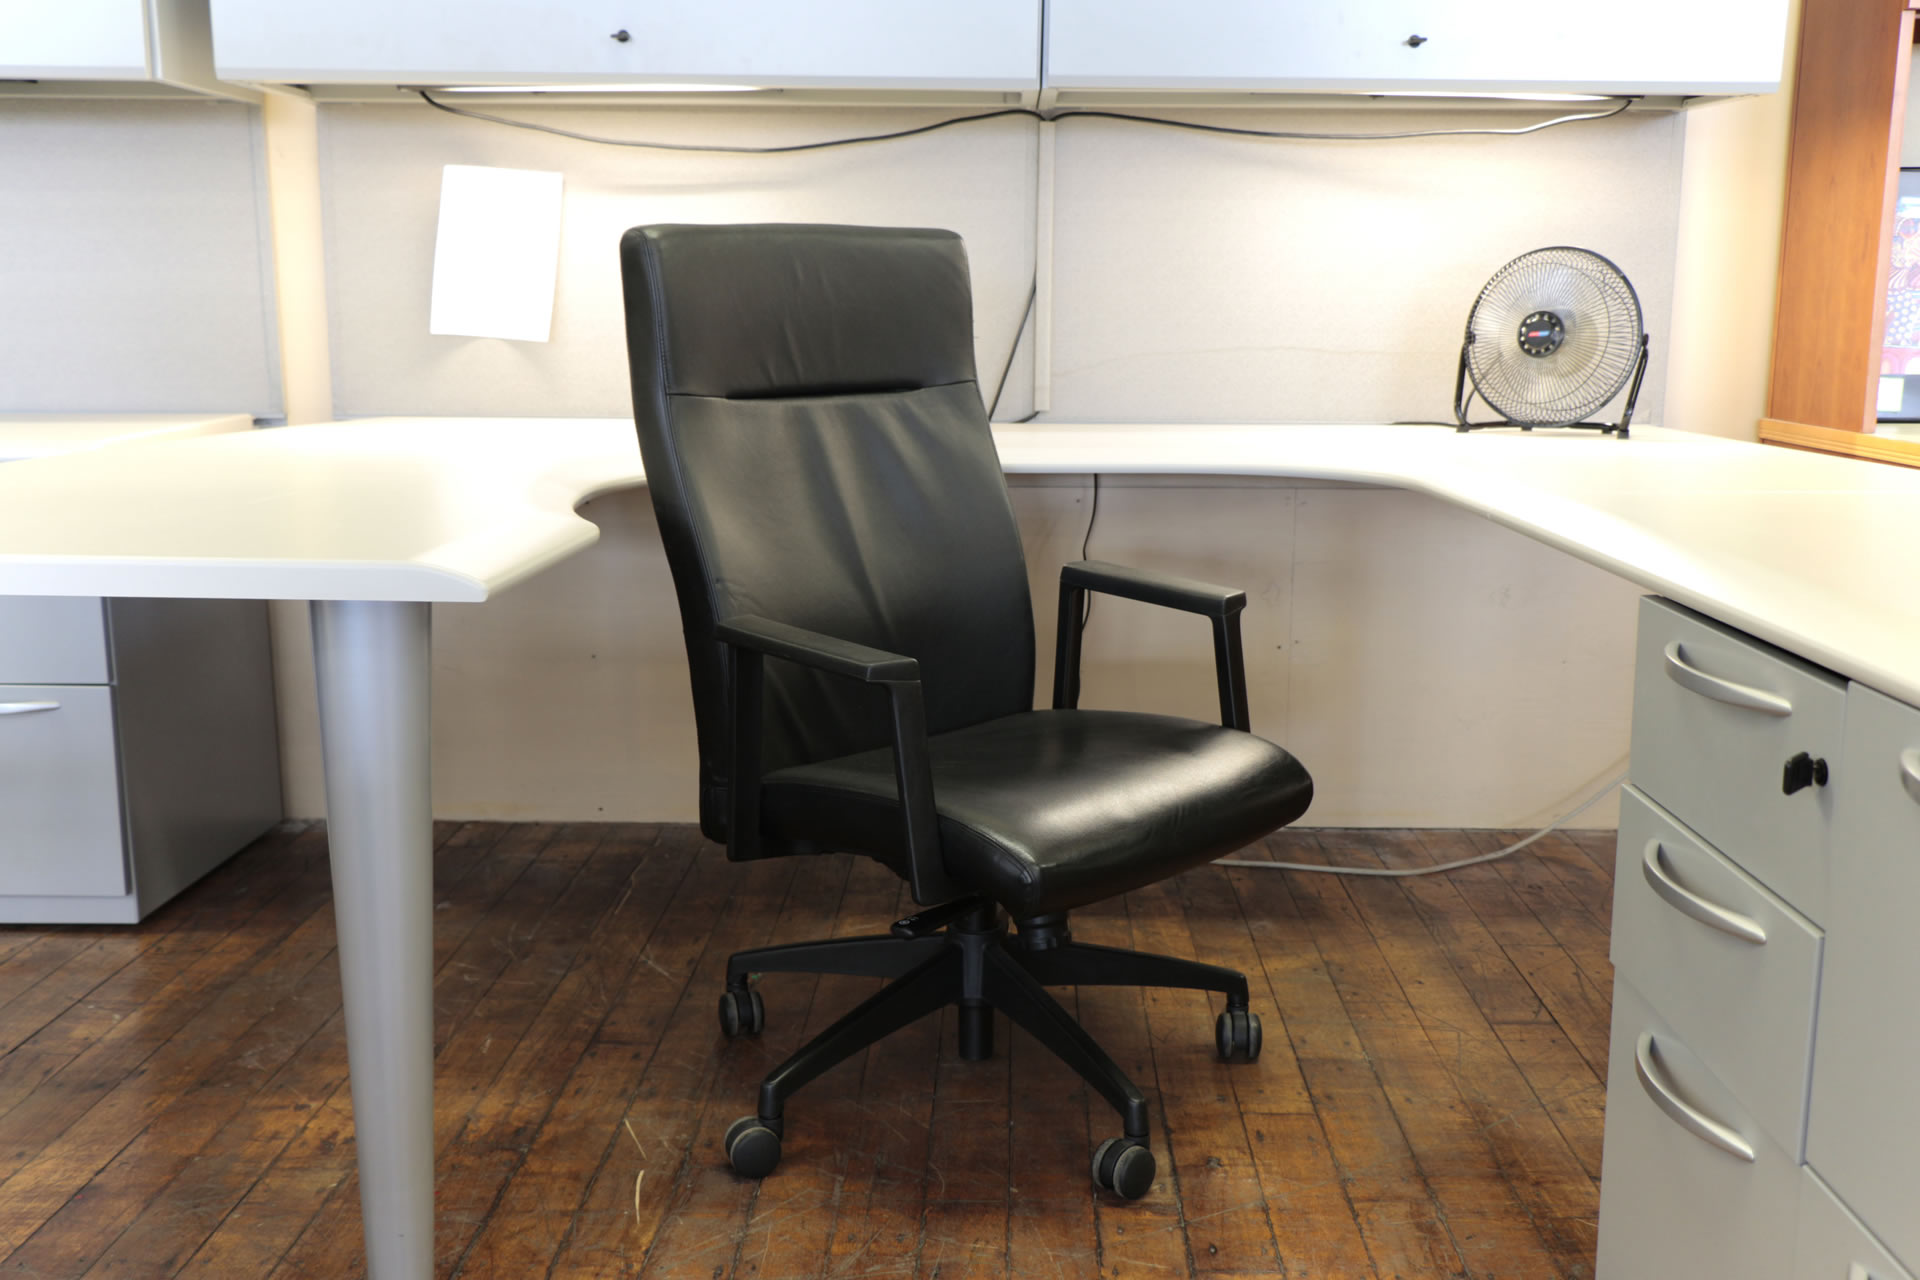 turnstone office furniture. Steelcase Turnstone Black Leather Hi-Back Executive Chairs.  Peartreeofficefurniture_peartreeofficefurniture_mg_4640.jpg Turnstone Office Furniture